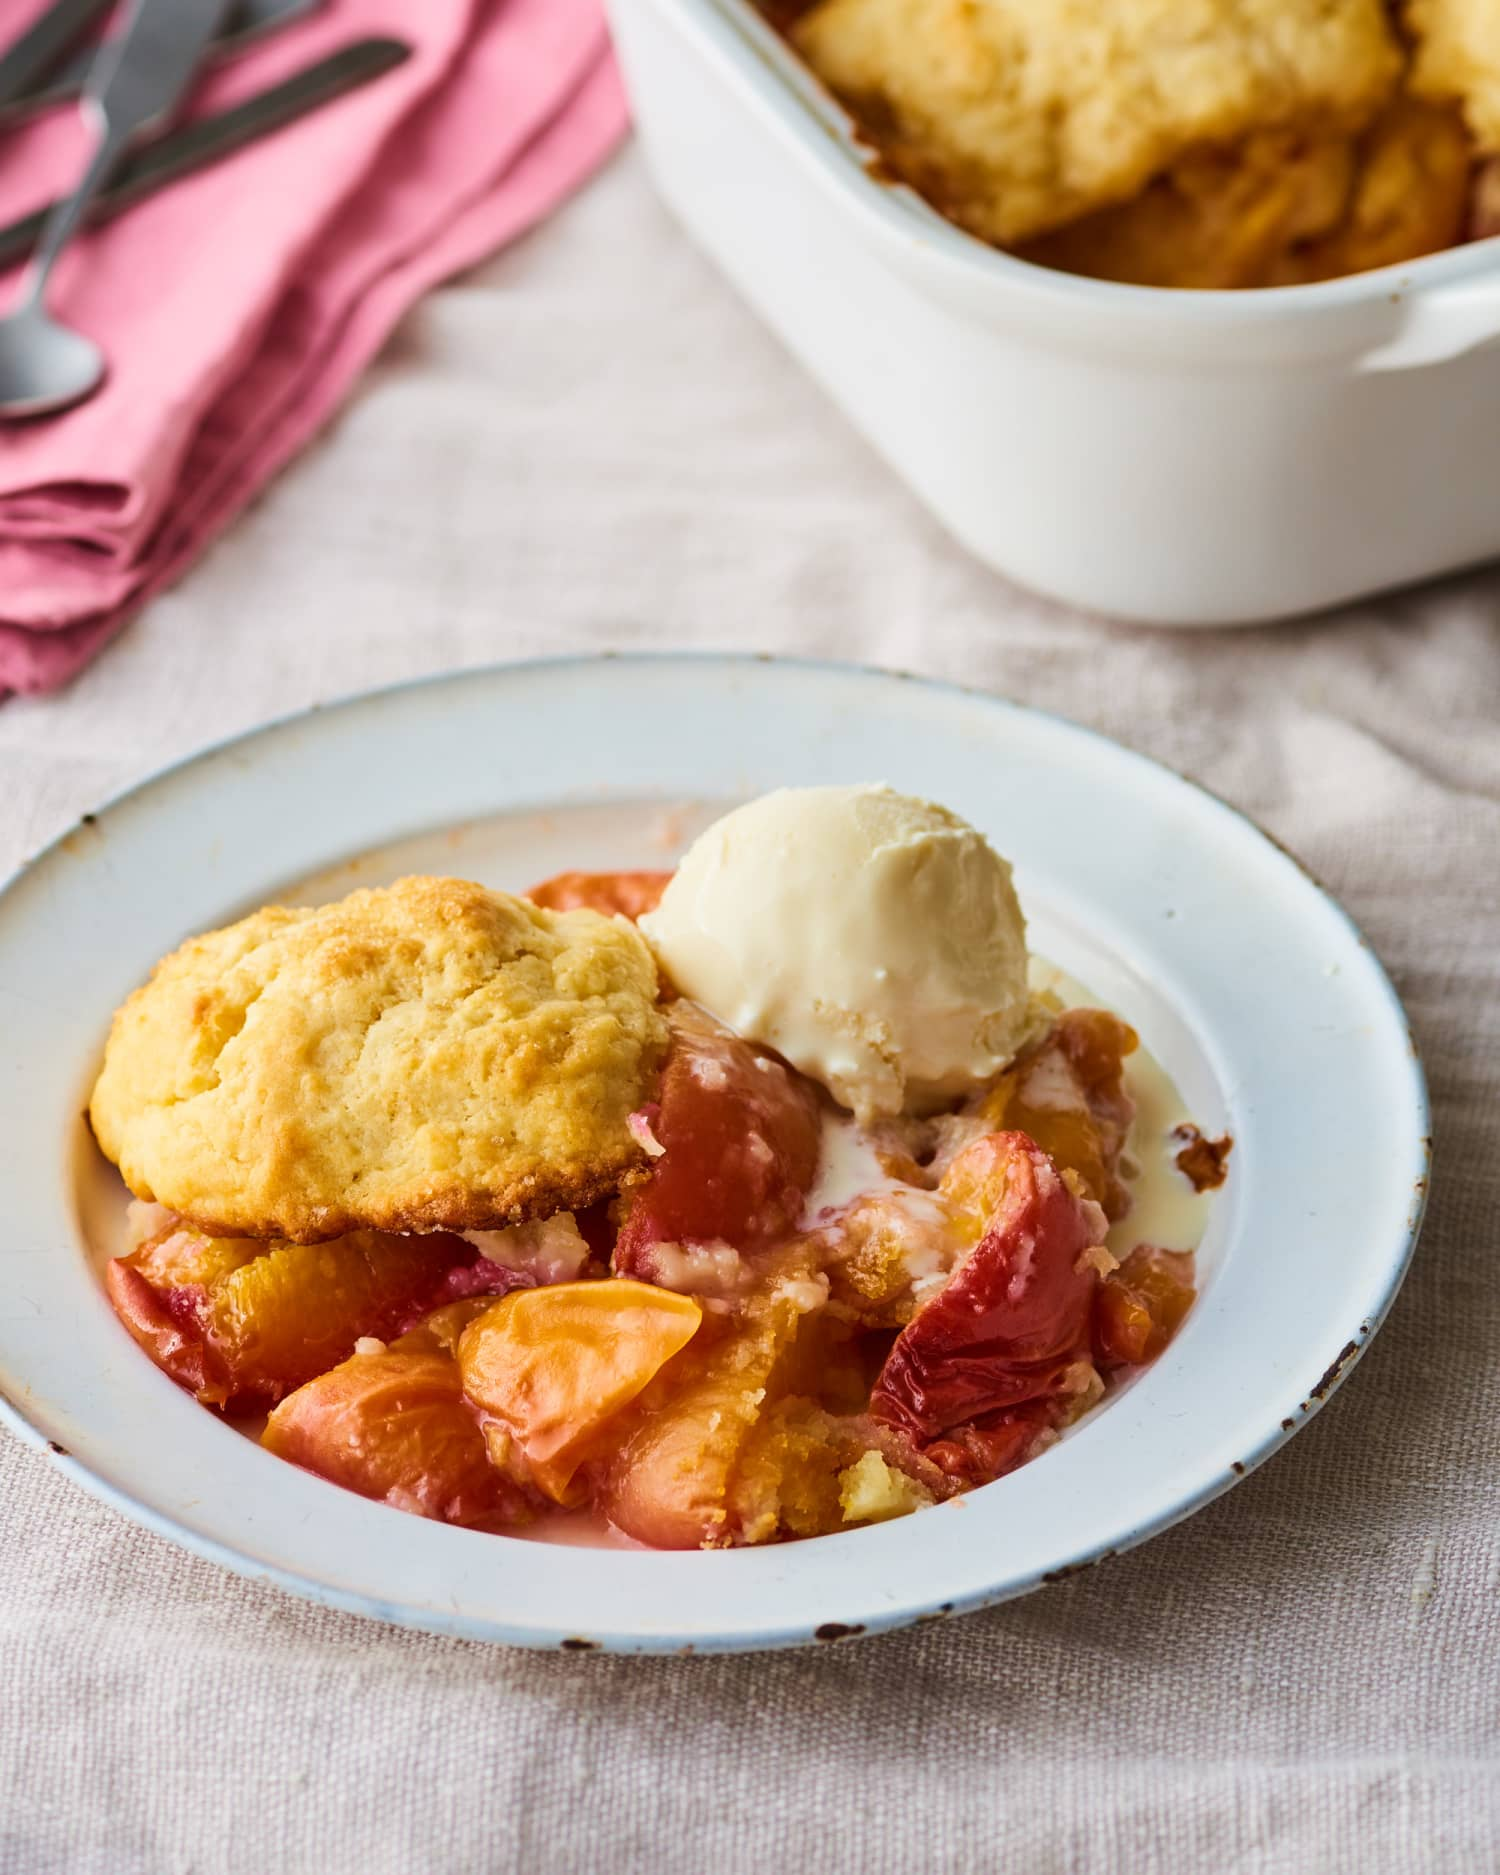 This Southern Peach Cobbler Is a Potluck Favorite